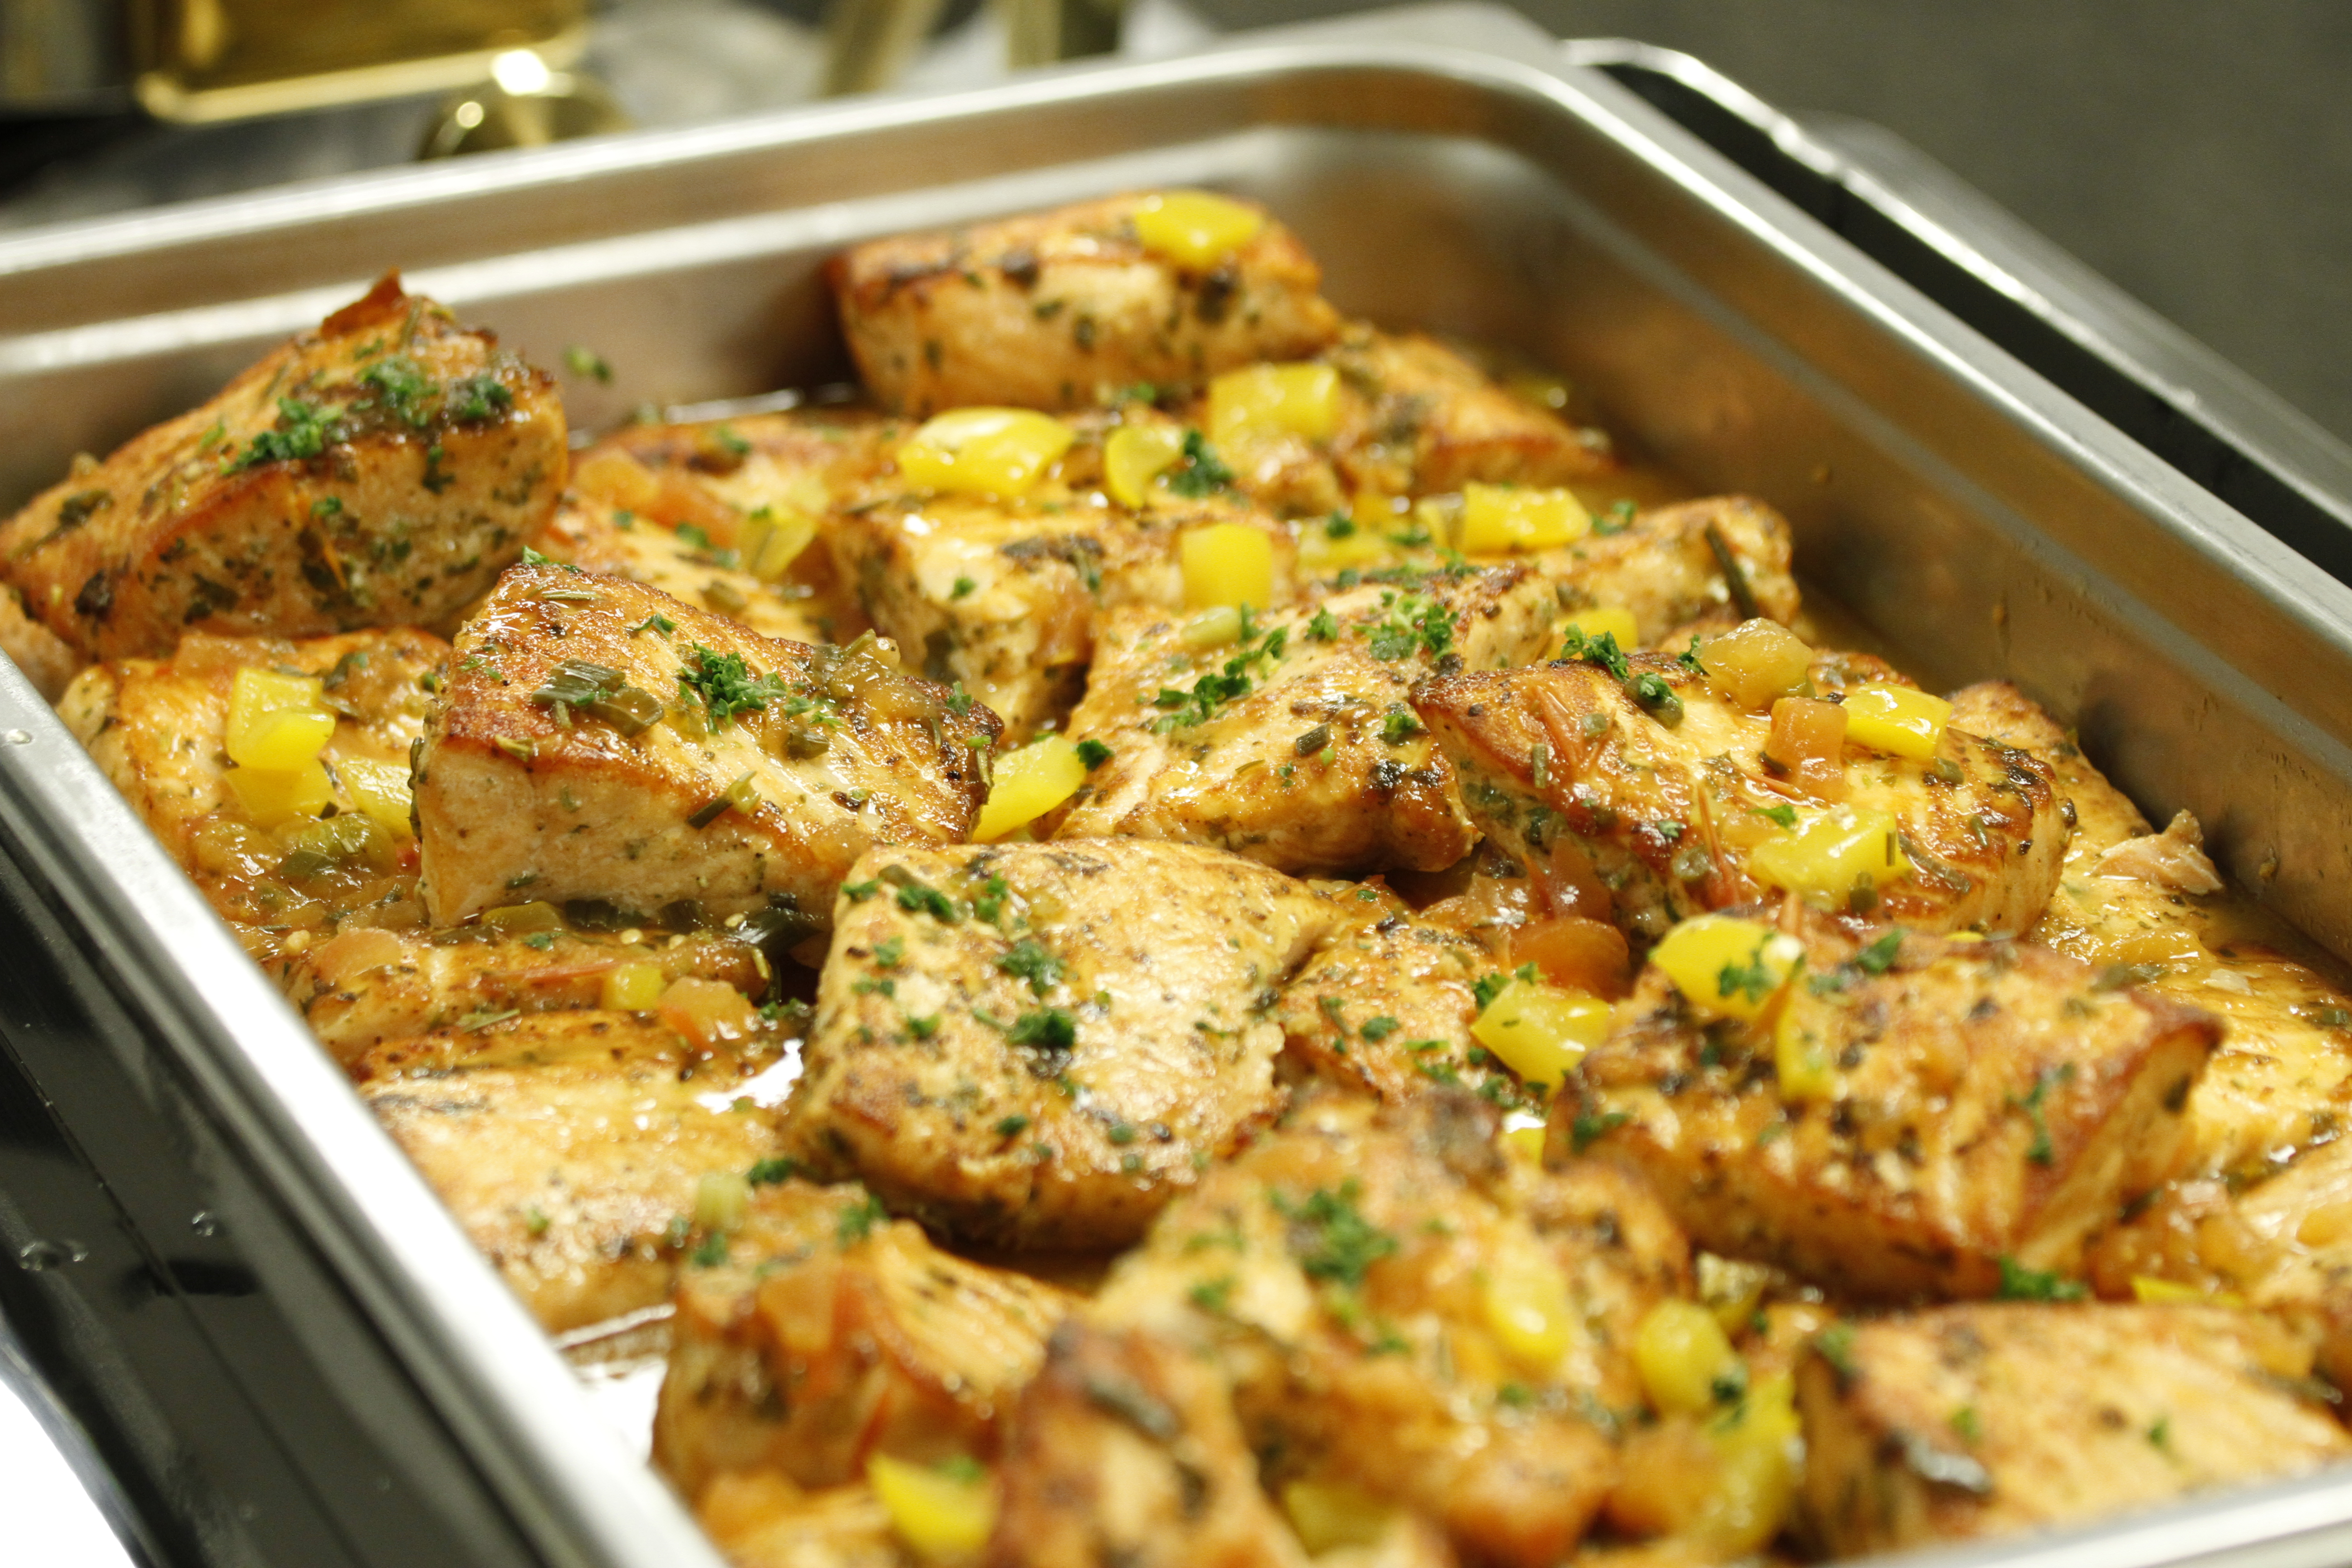 Lean meats are a great source of protein for anyone with COPD.